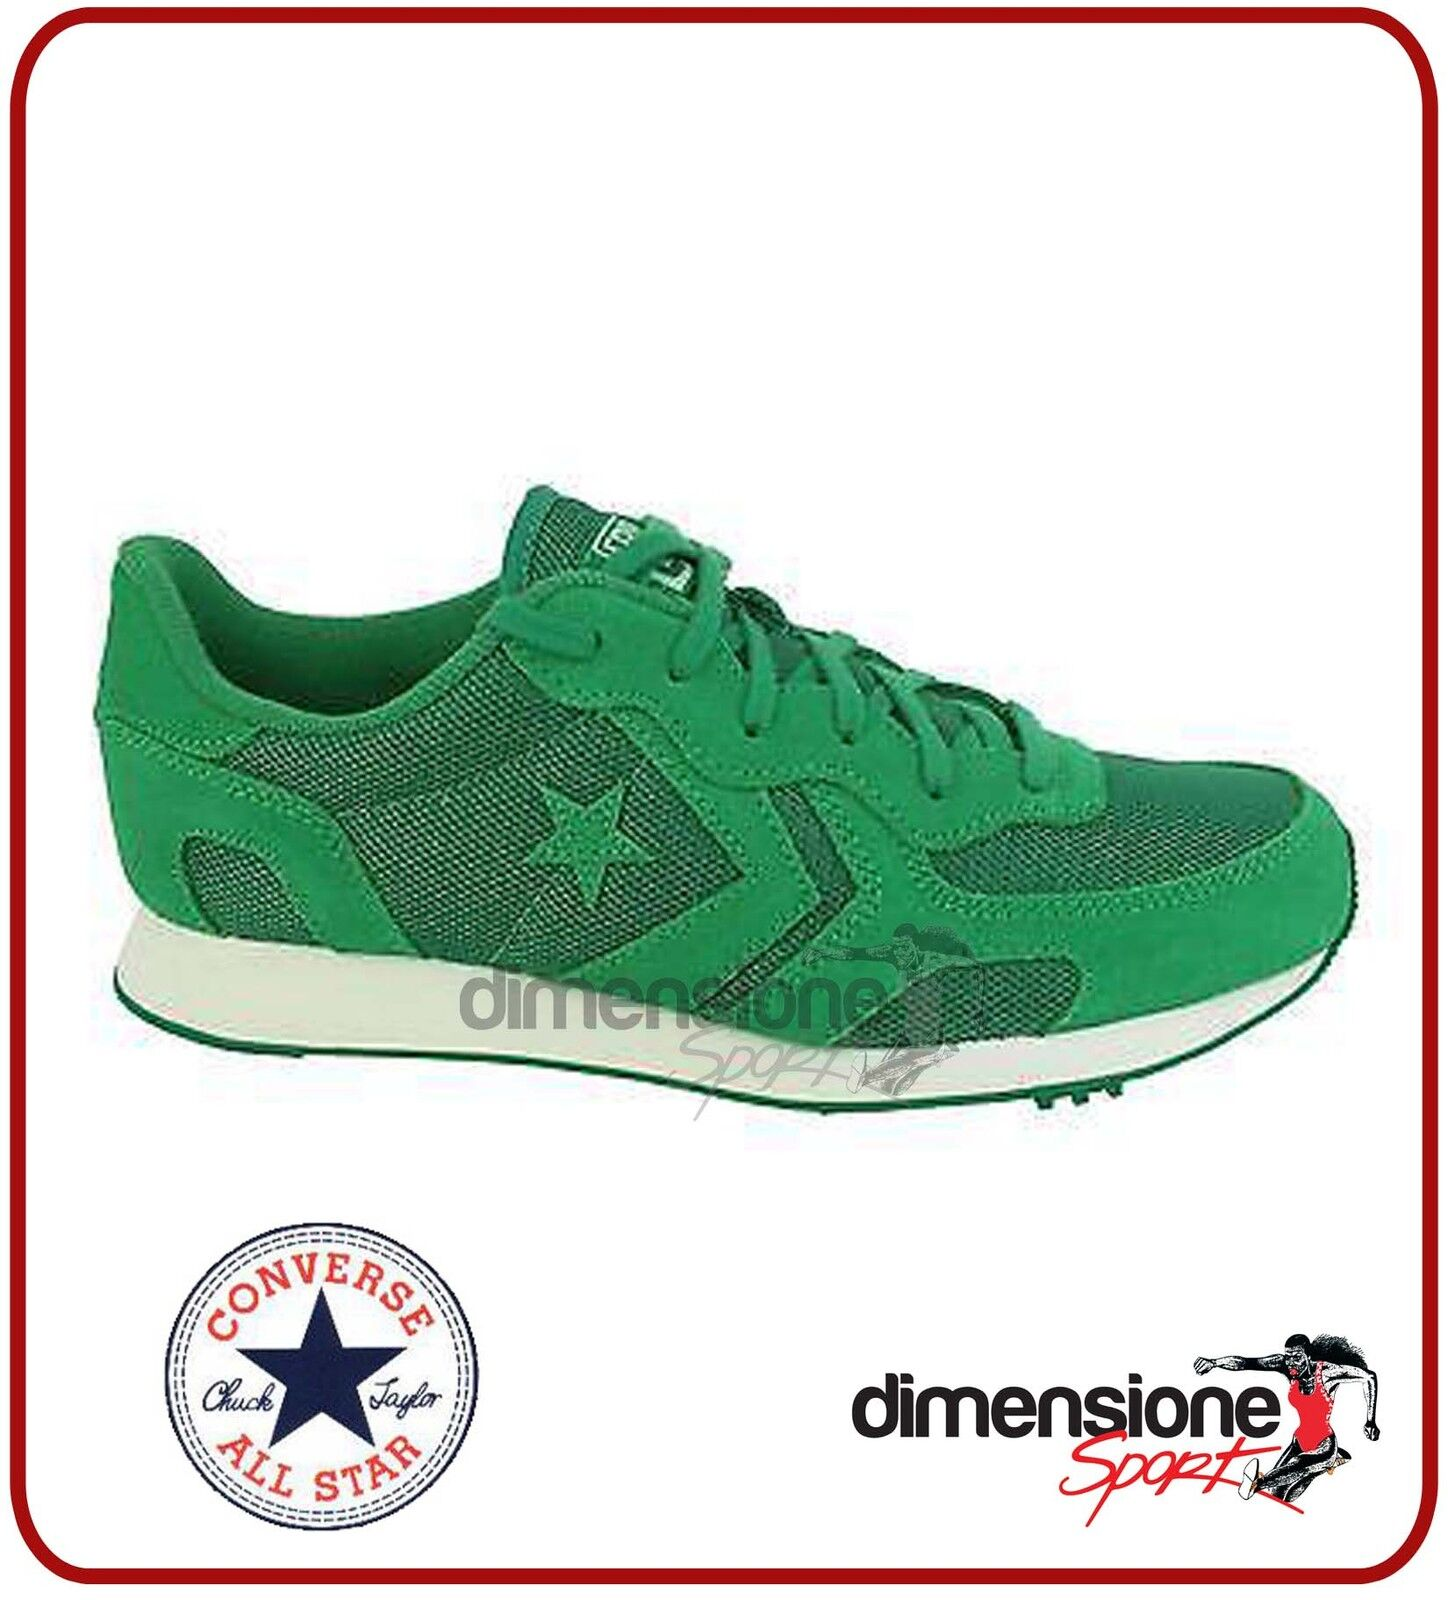 ALL STAR SCARPE CONVERSE 7,5 VERDE TG 40,5 US 7,5 CONVERSE AUCKLAND RACER 152677C SNEAKERS 8bc91e